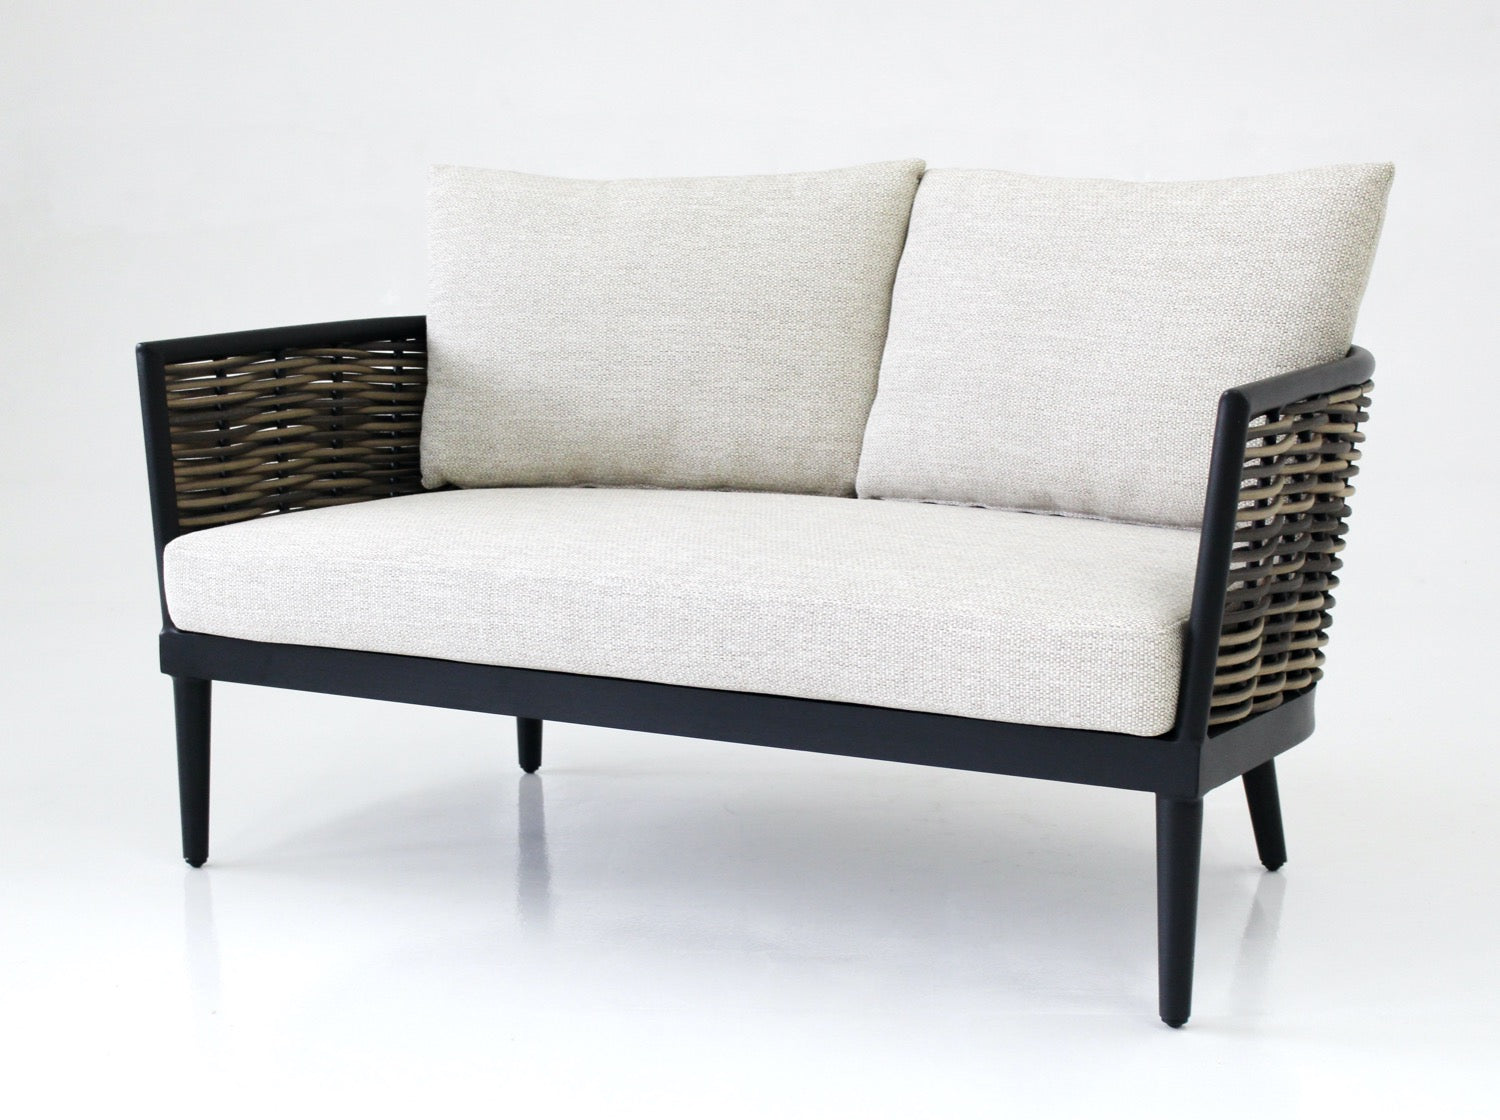 two seater sofa in black powdercoated aluminium with handwoven synthetic rattan in natural two toned finishing, tapered legs and pale sand cushions and pillow